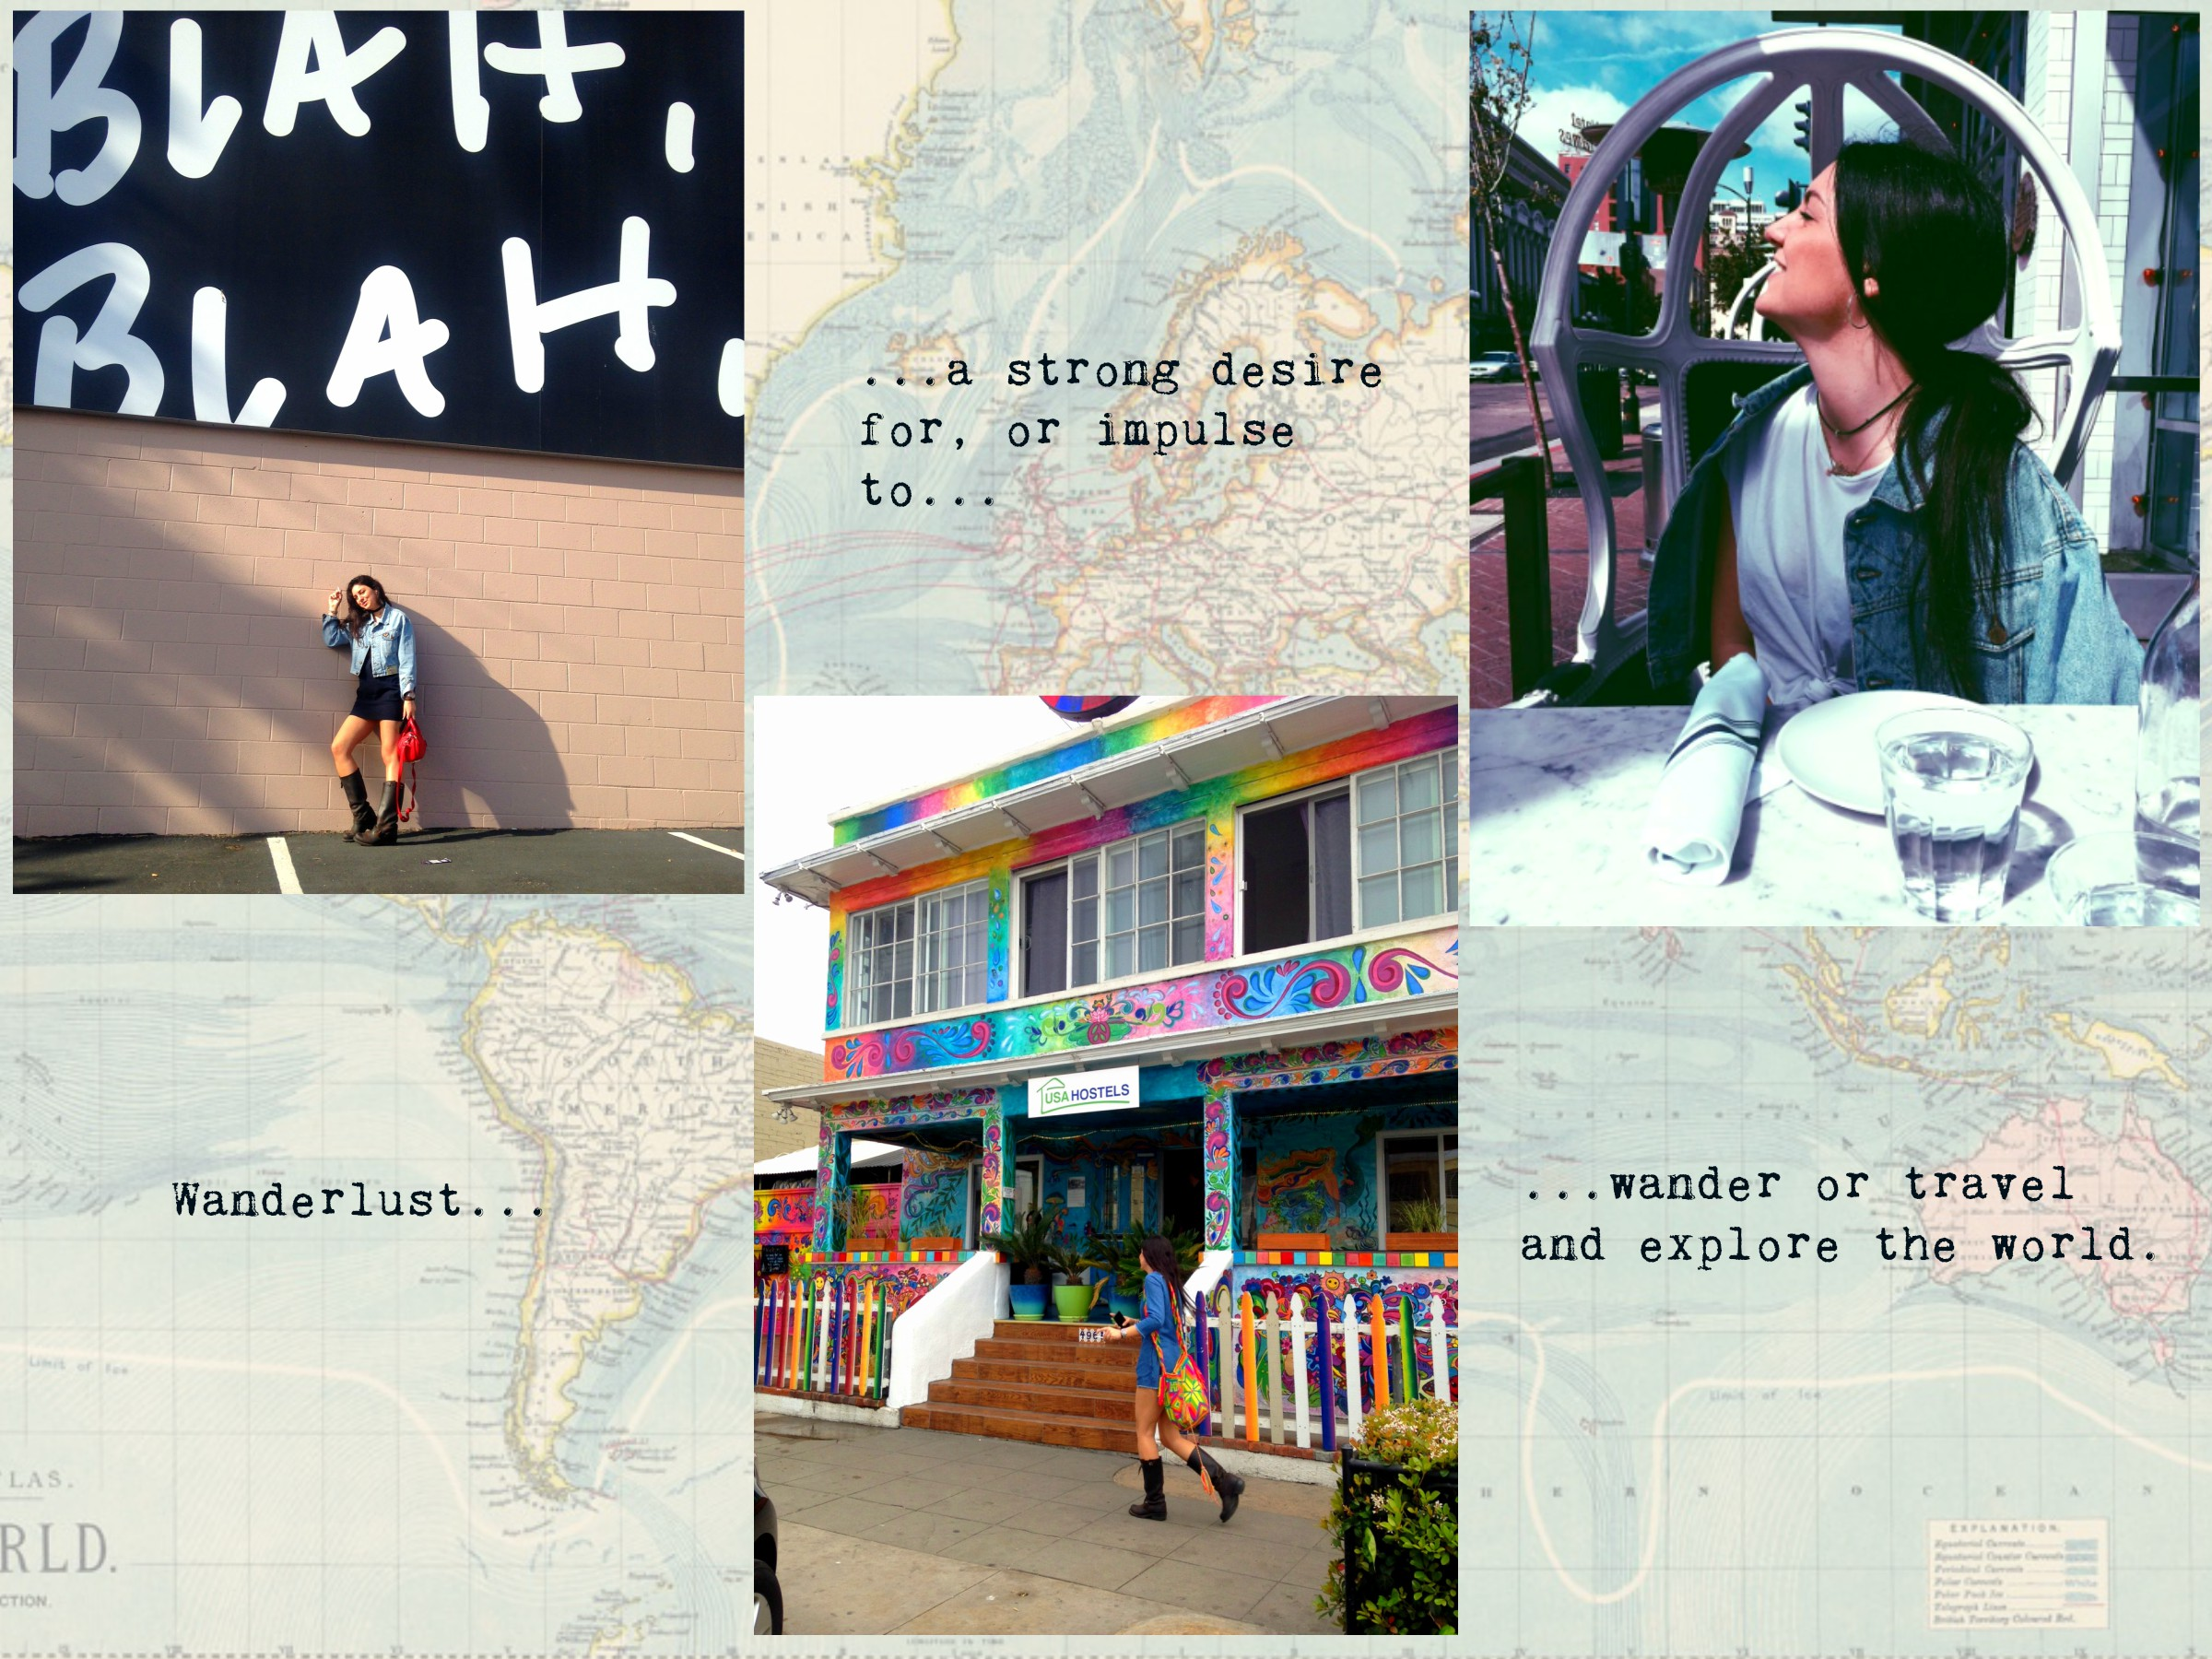 I used the theme of Wanderlust for this image as we are both international students who love to travel and explore. These photographs were taken in three different locations in San Diego.